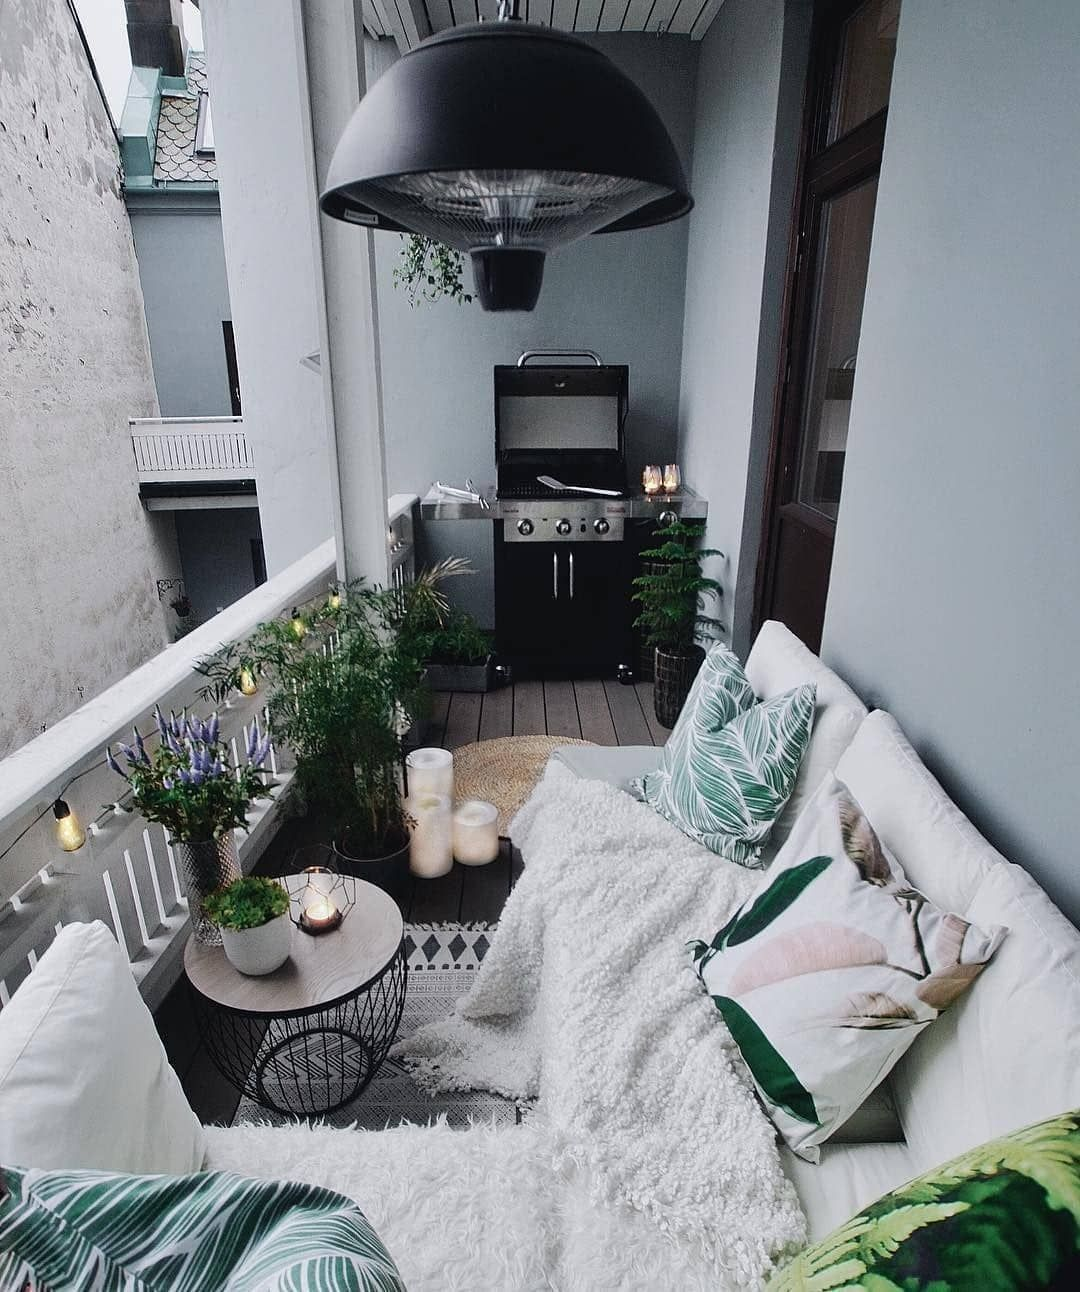 The Best Decorated Small Outdoor Balconies on Pinterest in 24